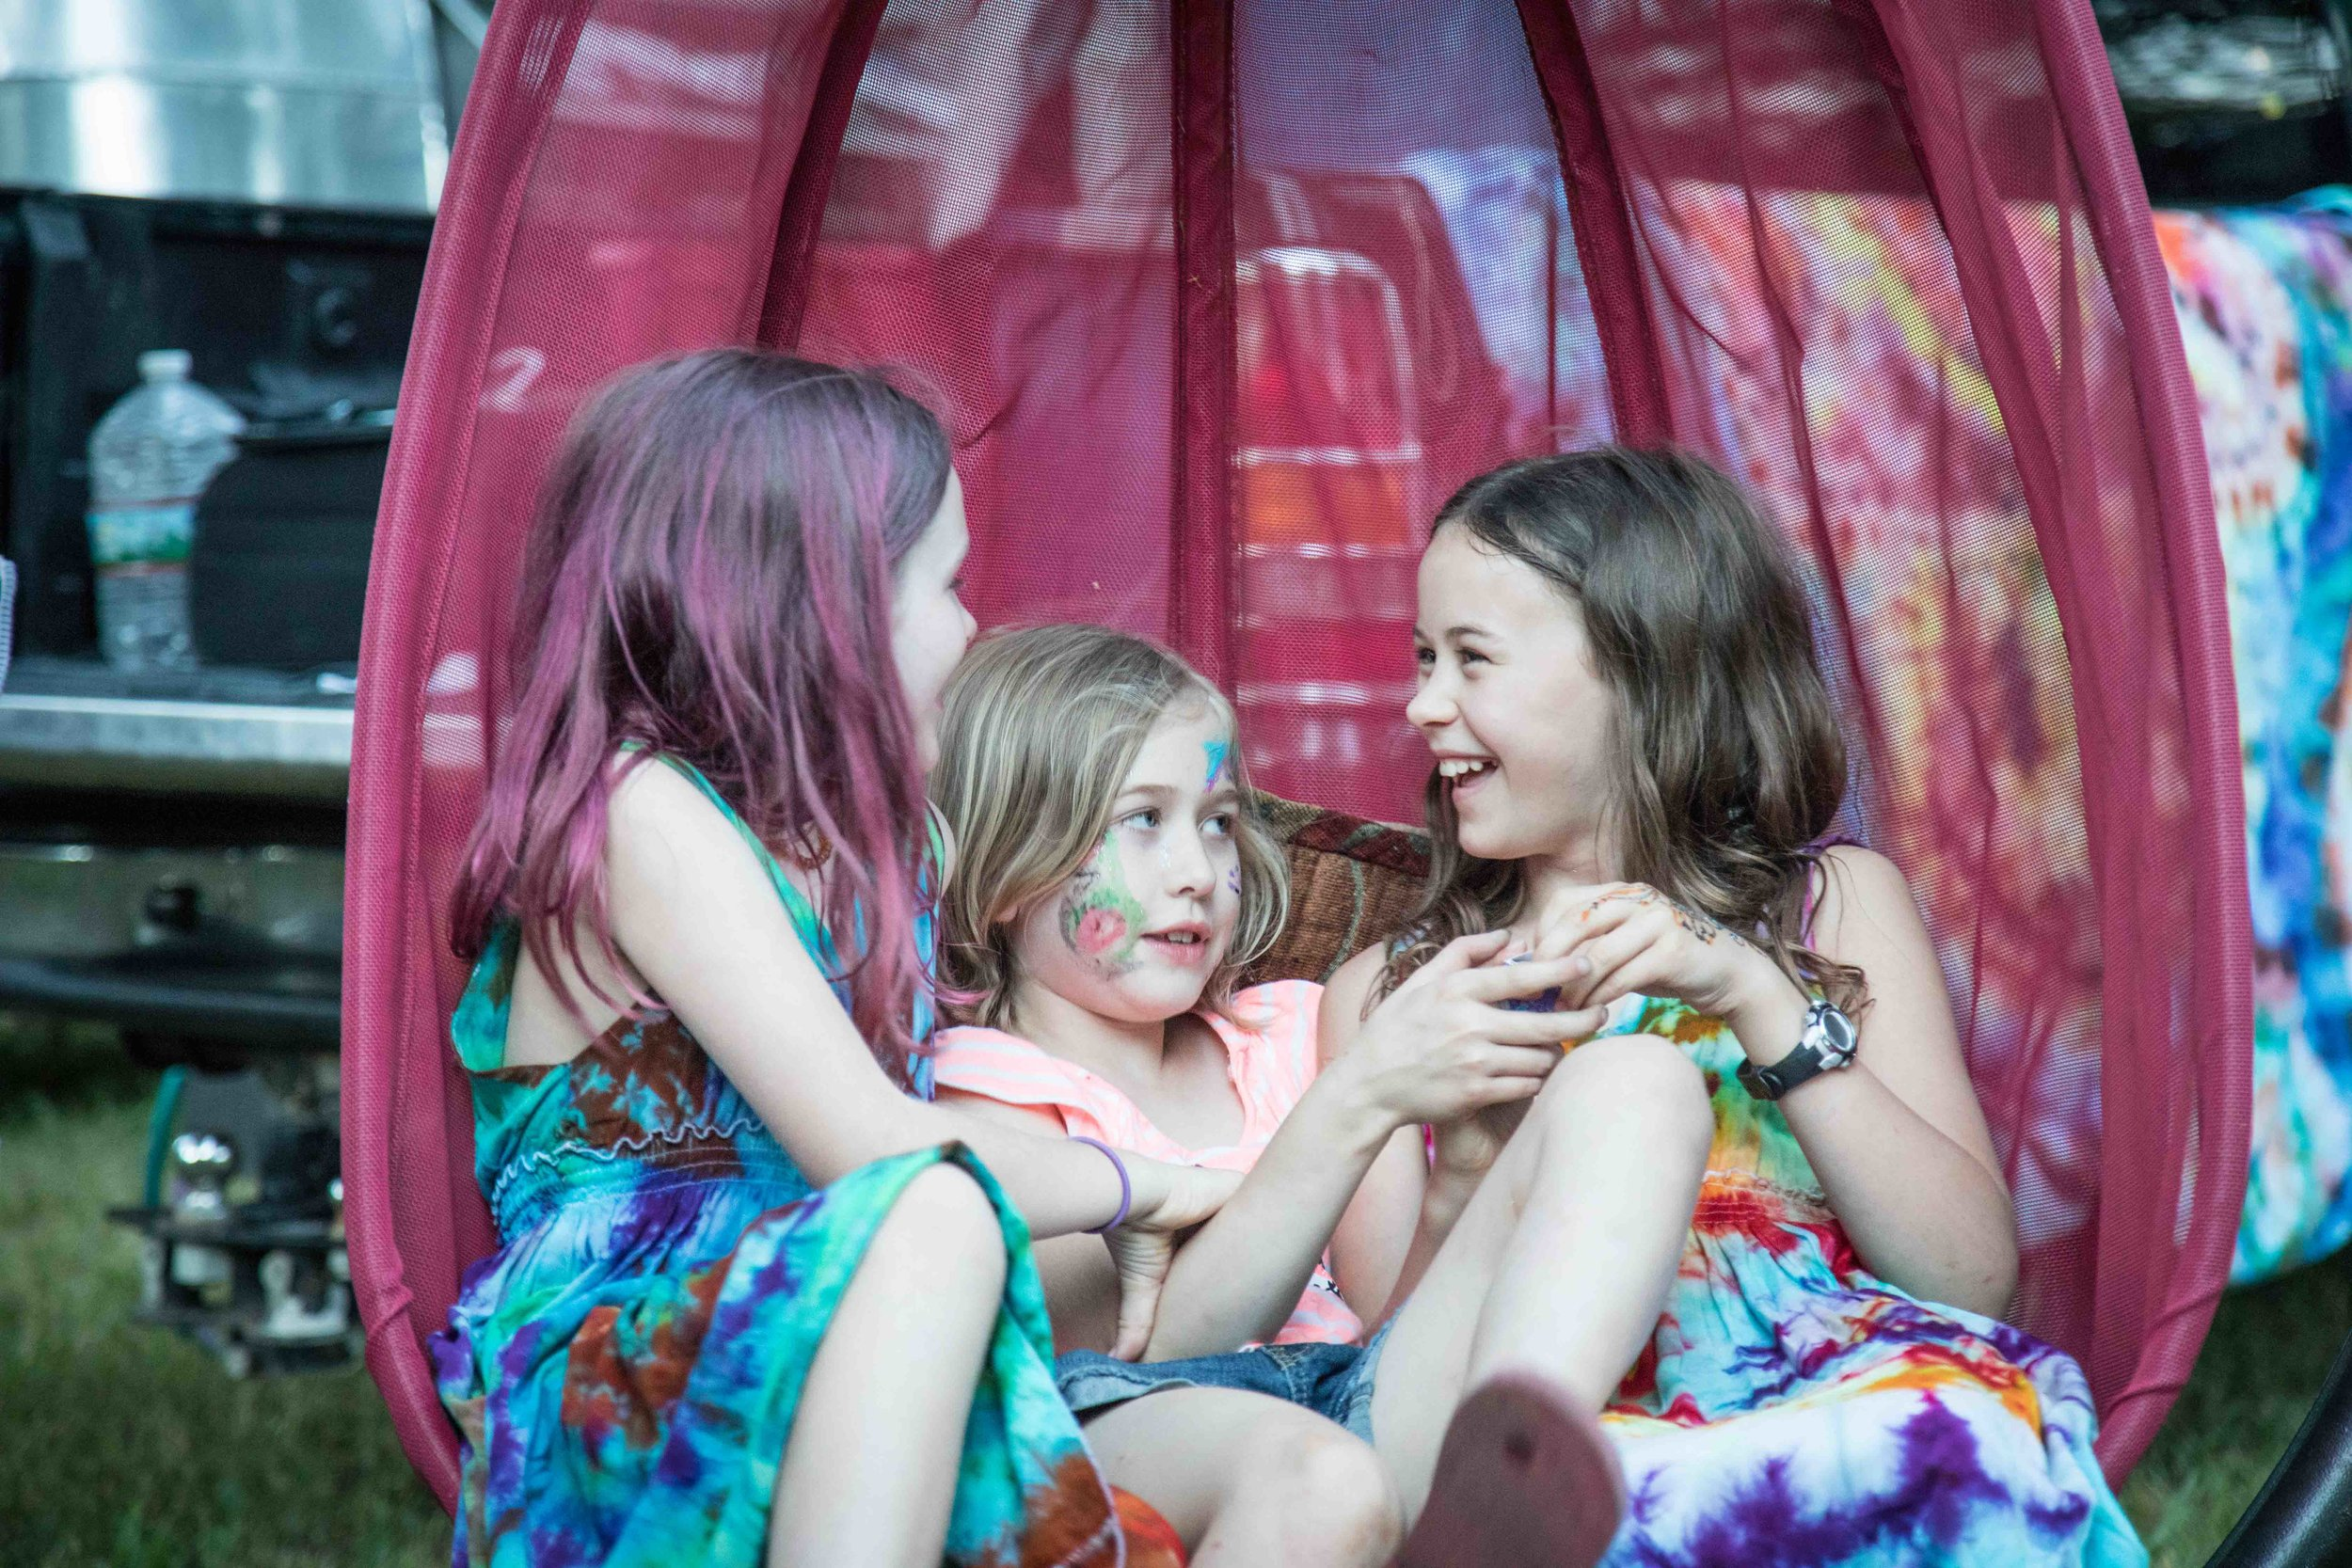 Three face painted children swinging in a hammock at the music festival